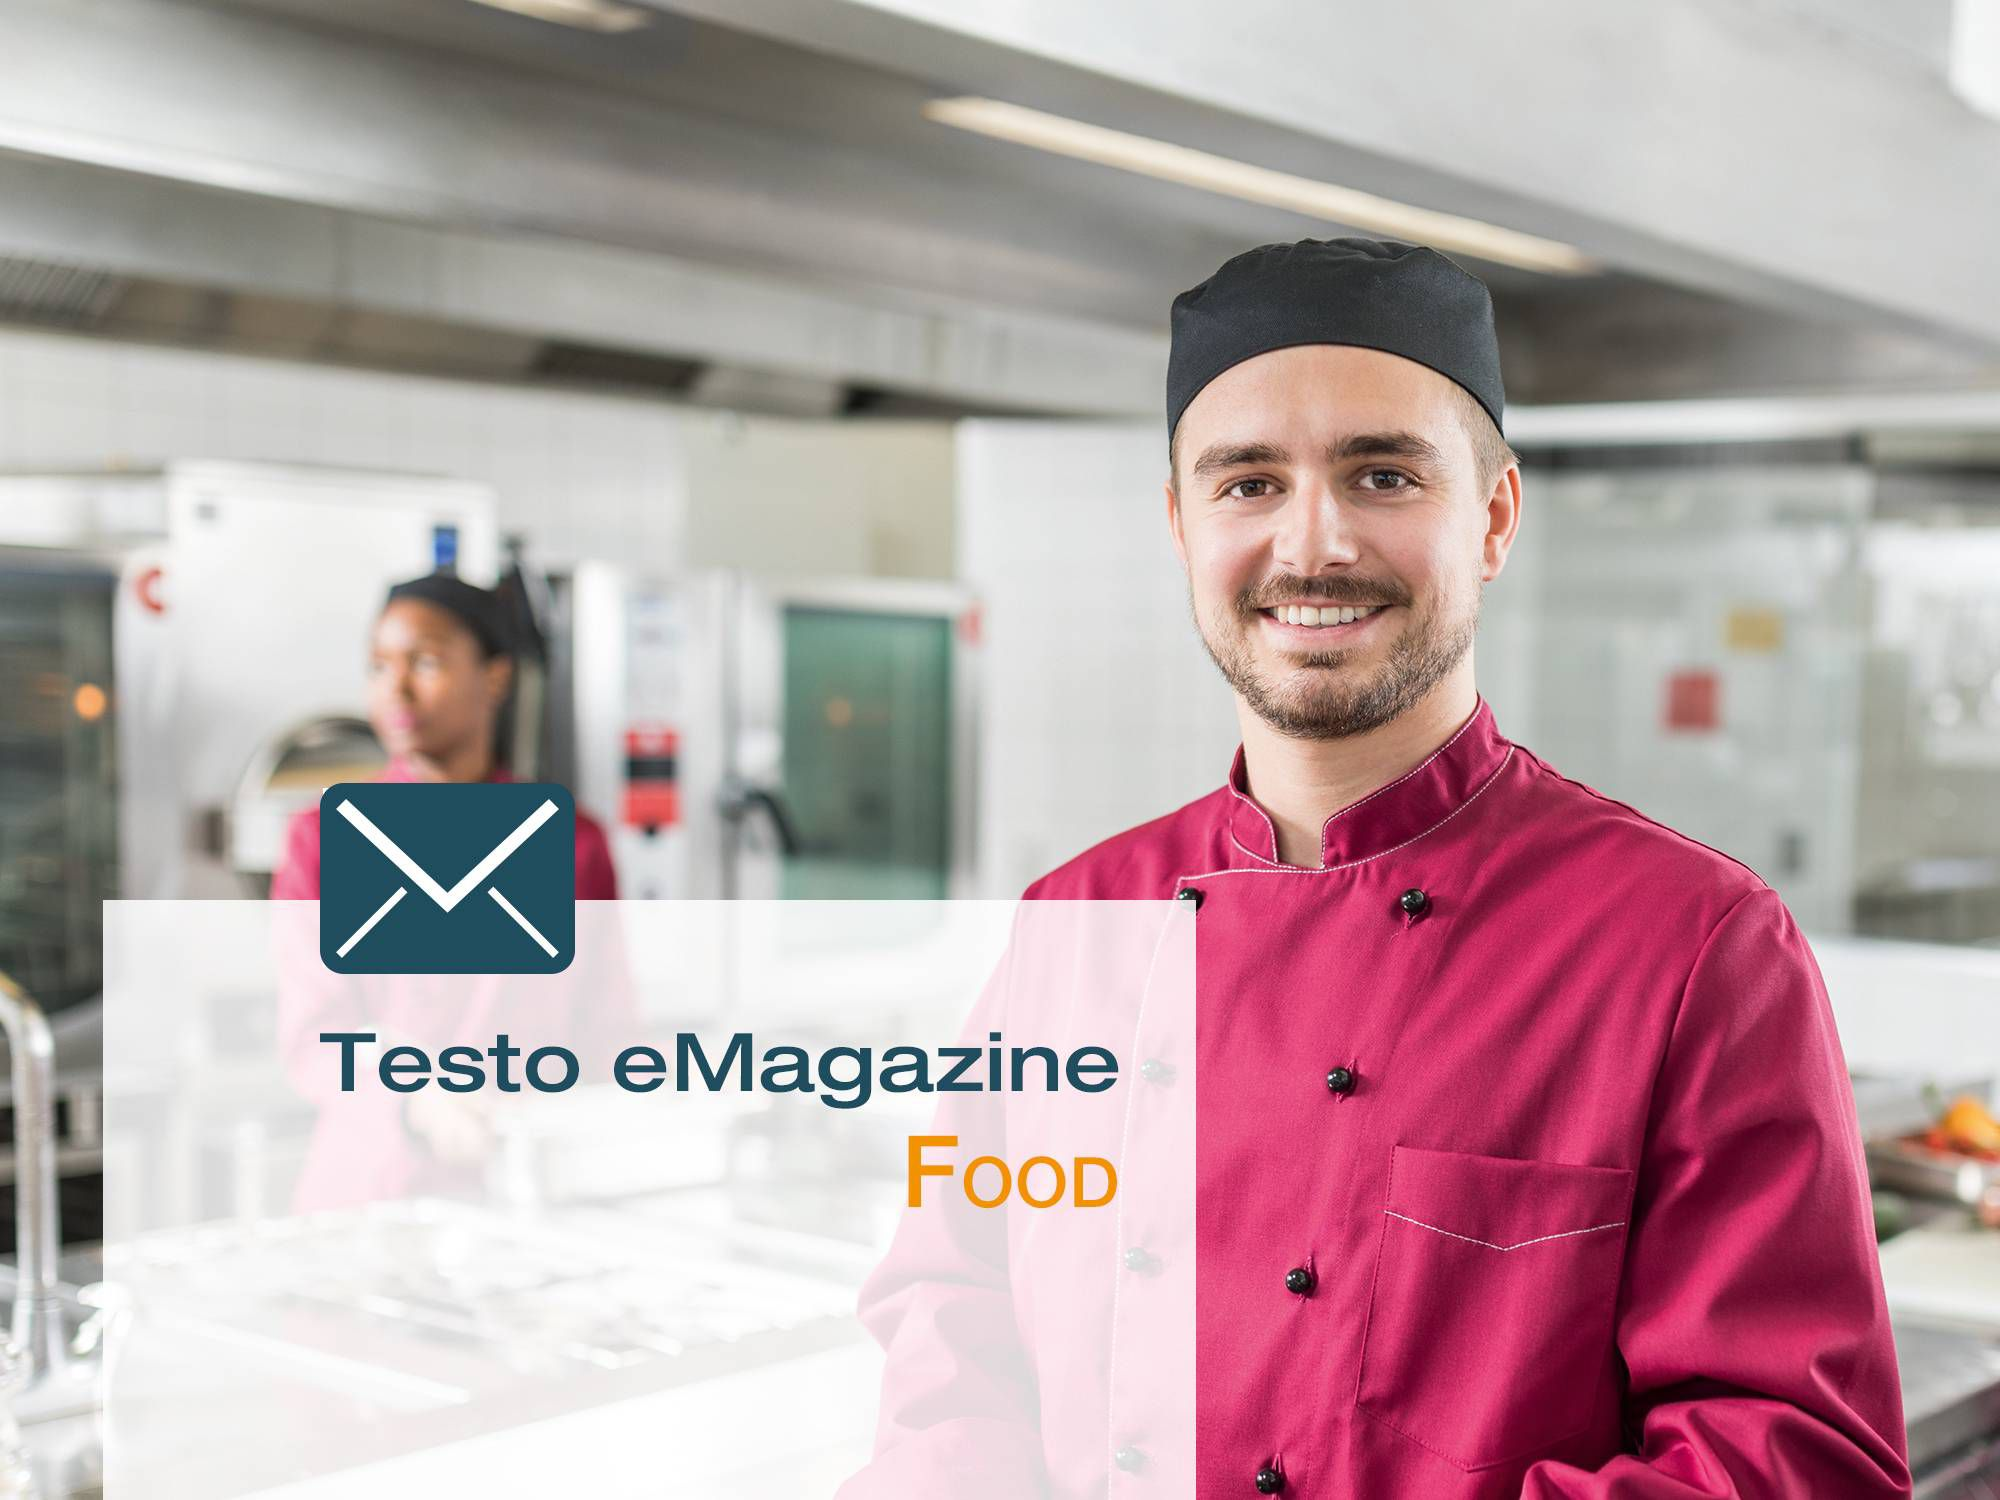 teaser-emagazine-solution-food.jpg